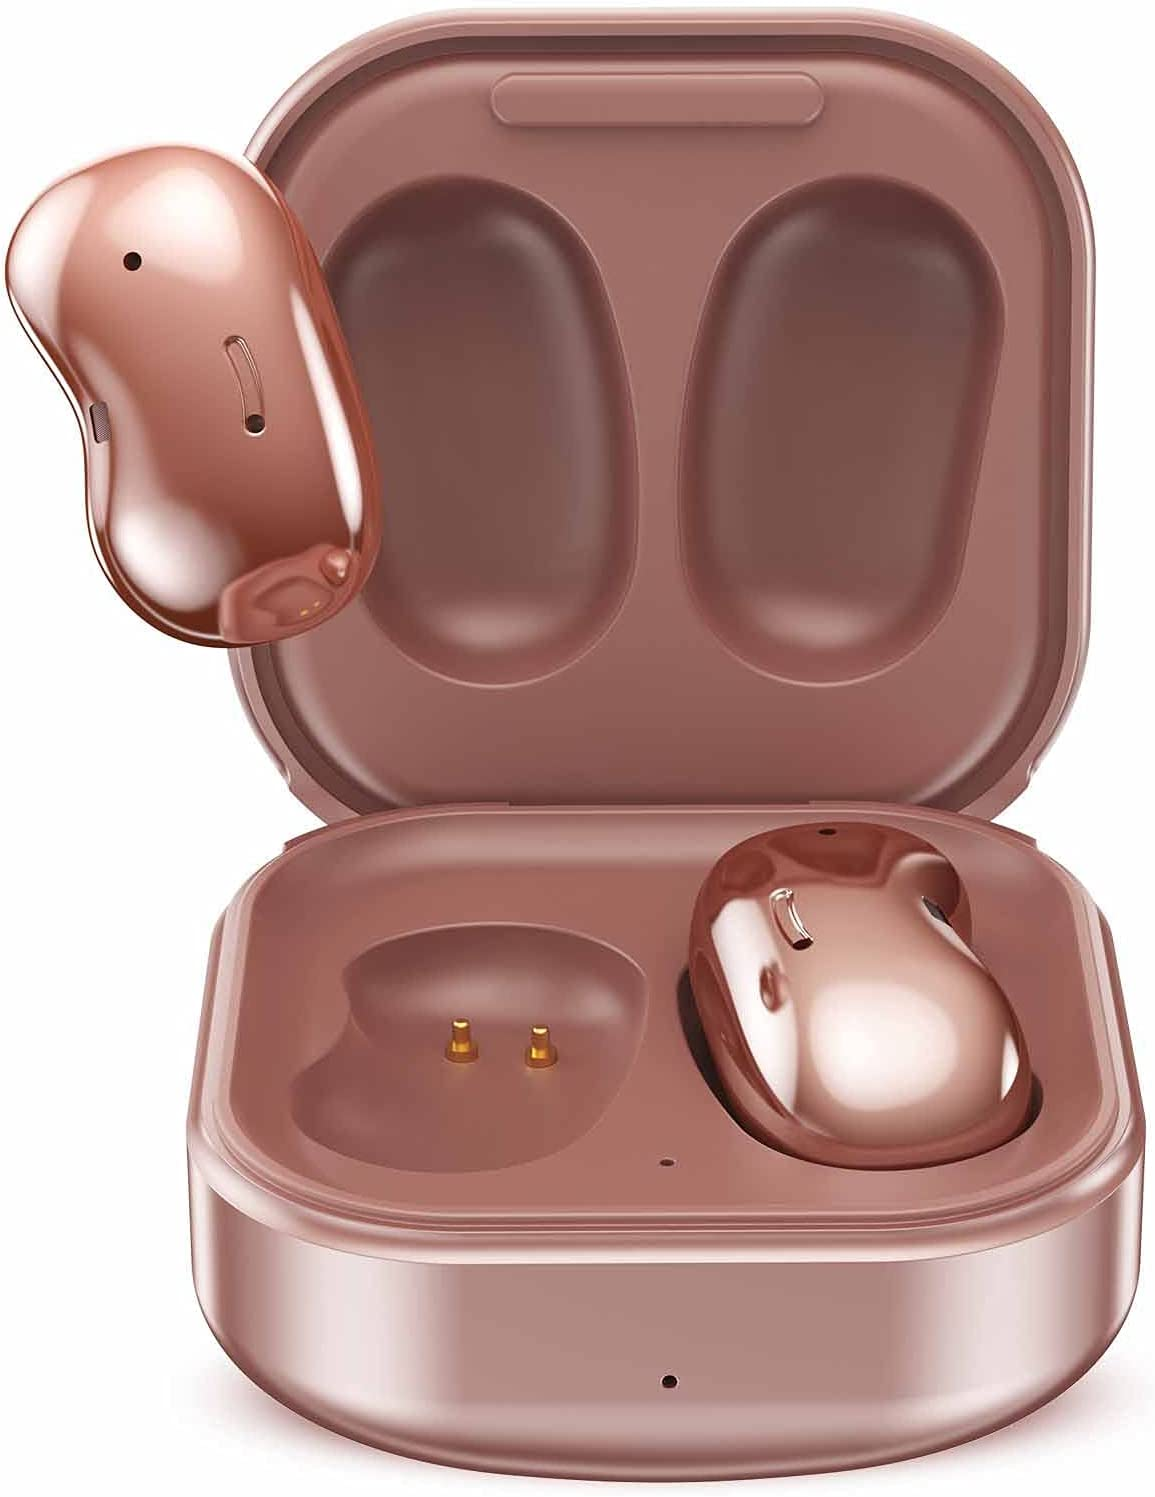 Urbanx Street Buds Live True Wireless Earbud Headphones for Samsung Galaxy Note 20 Ultra 5G - Wireless Earbuds w/Hands Free Controls - Rose Gold (US Version with Warranty)